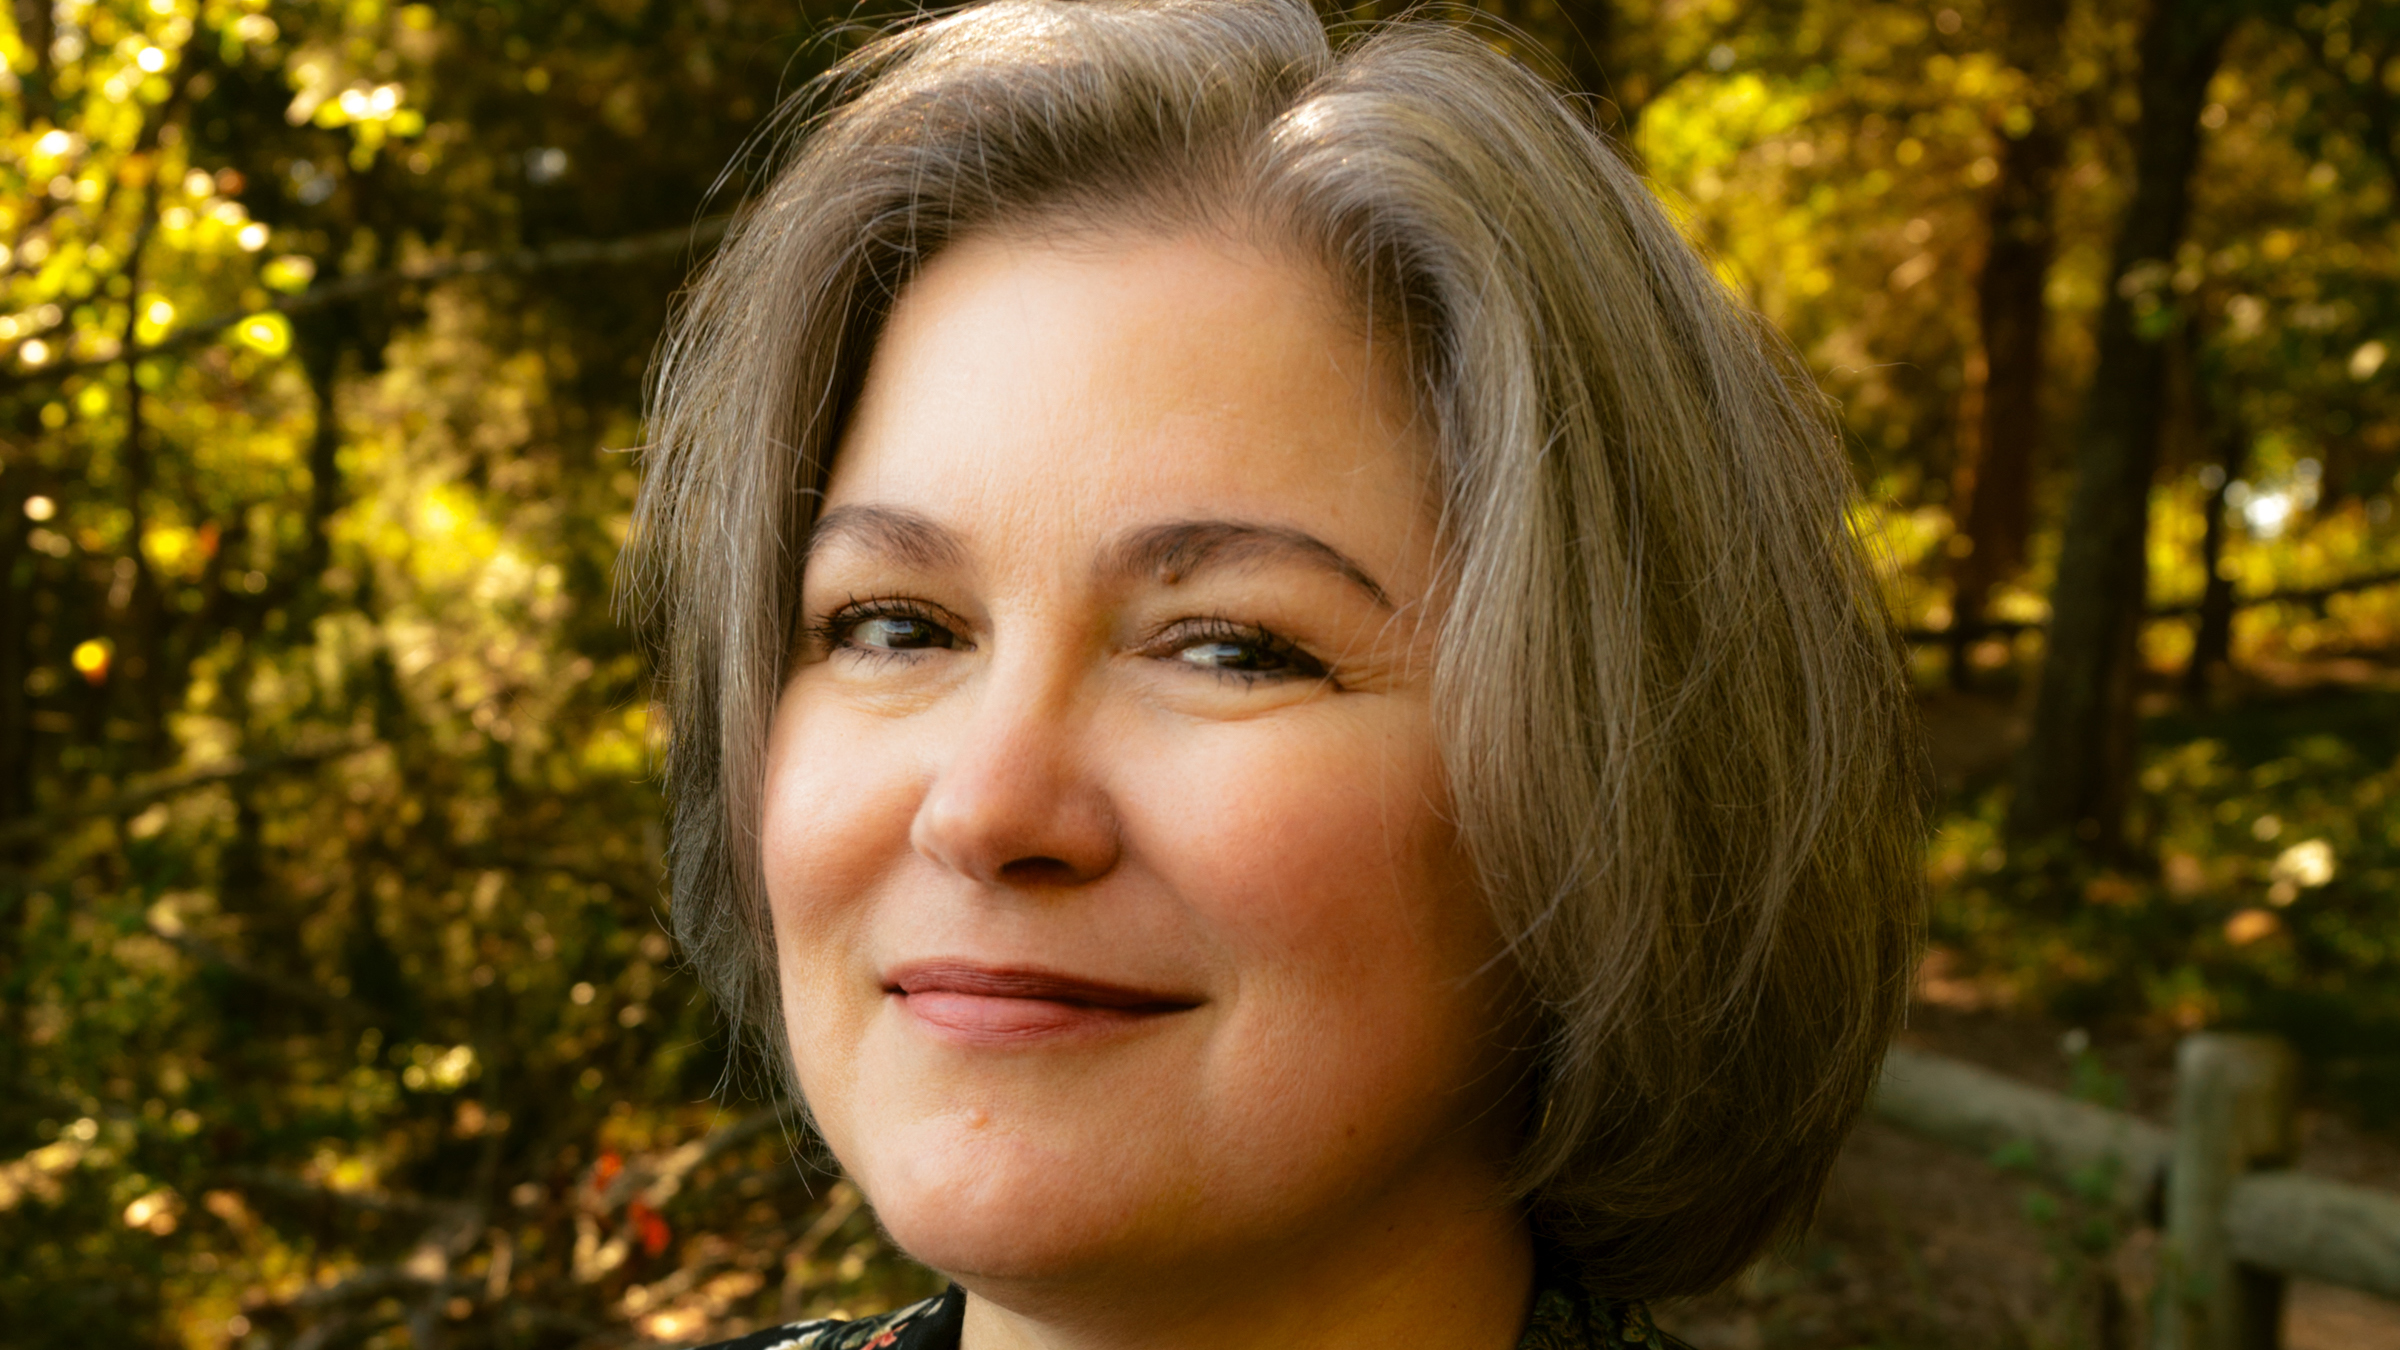 Alabama's Margaret Renkl, writer for New York Times, launches first book, 'Late Migrations'